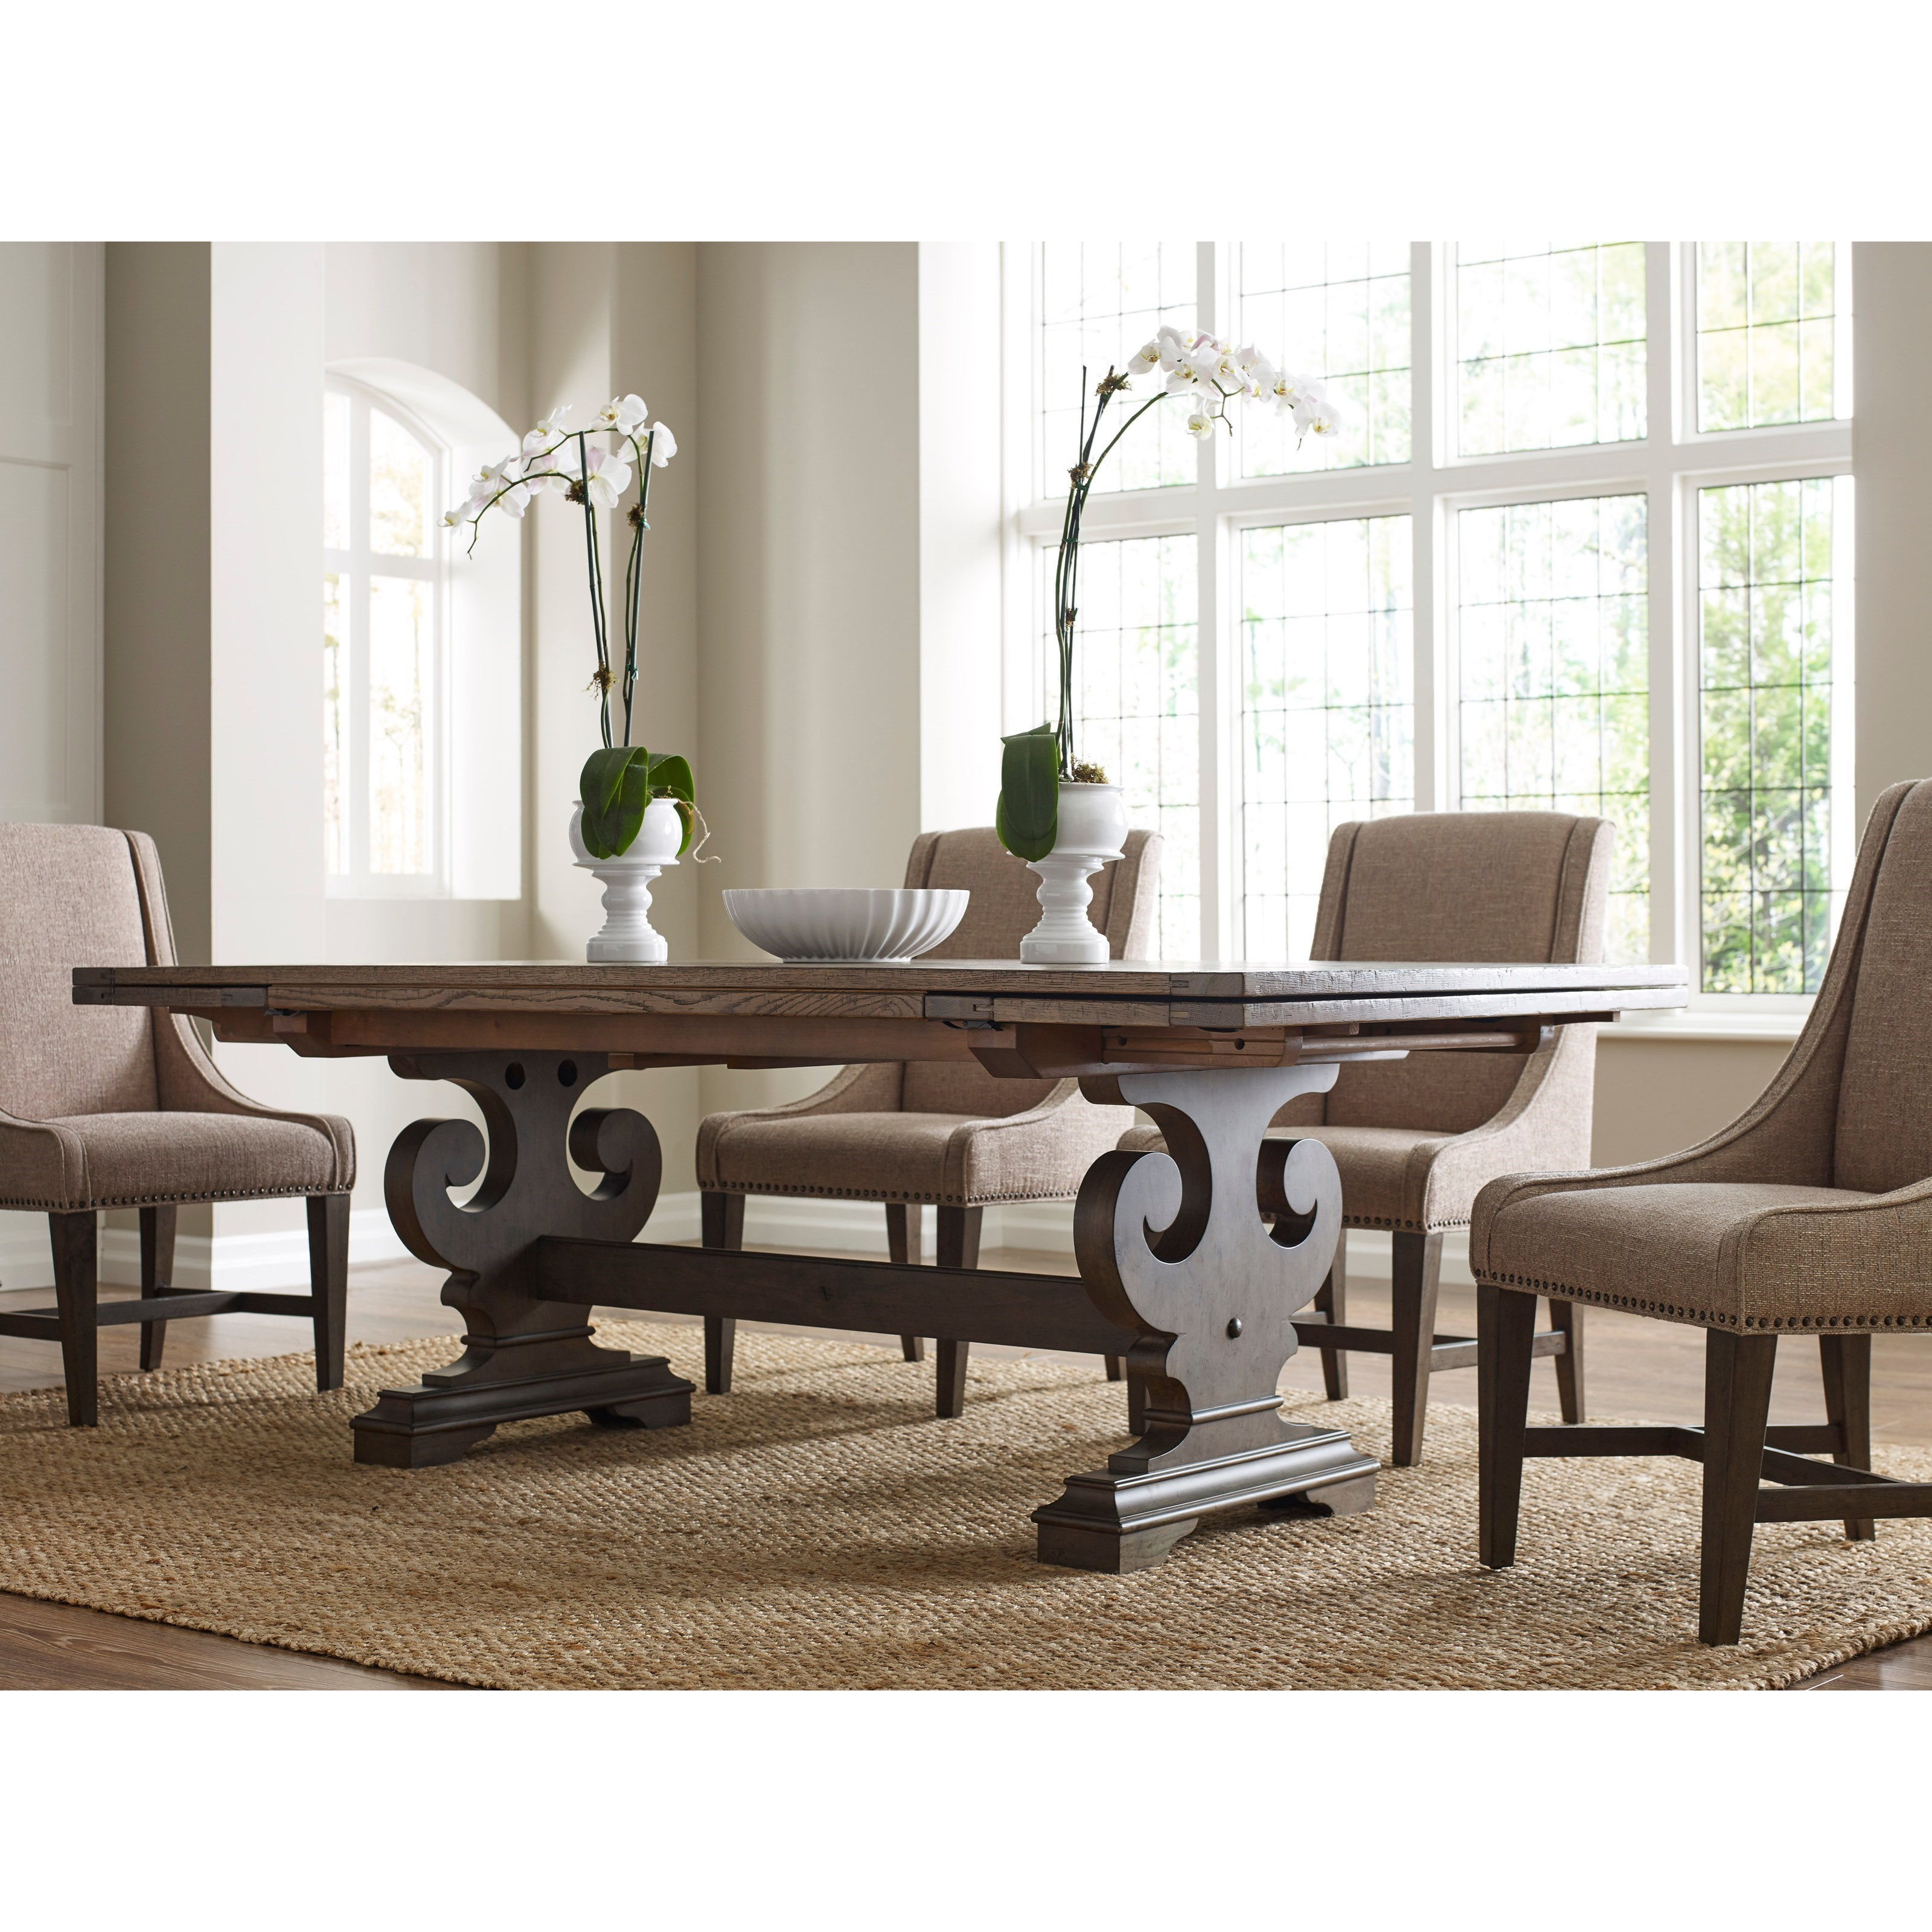 Kincaid furniture greyson 608 744p crawford refectory for Greyson dining table